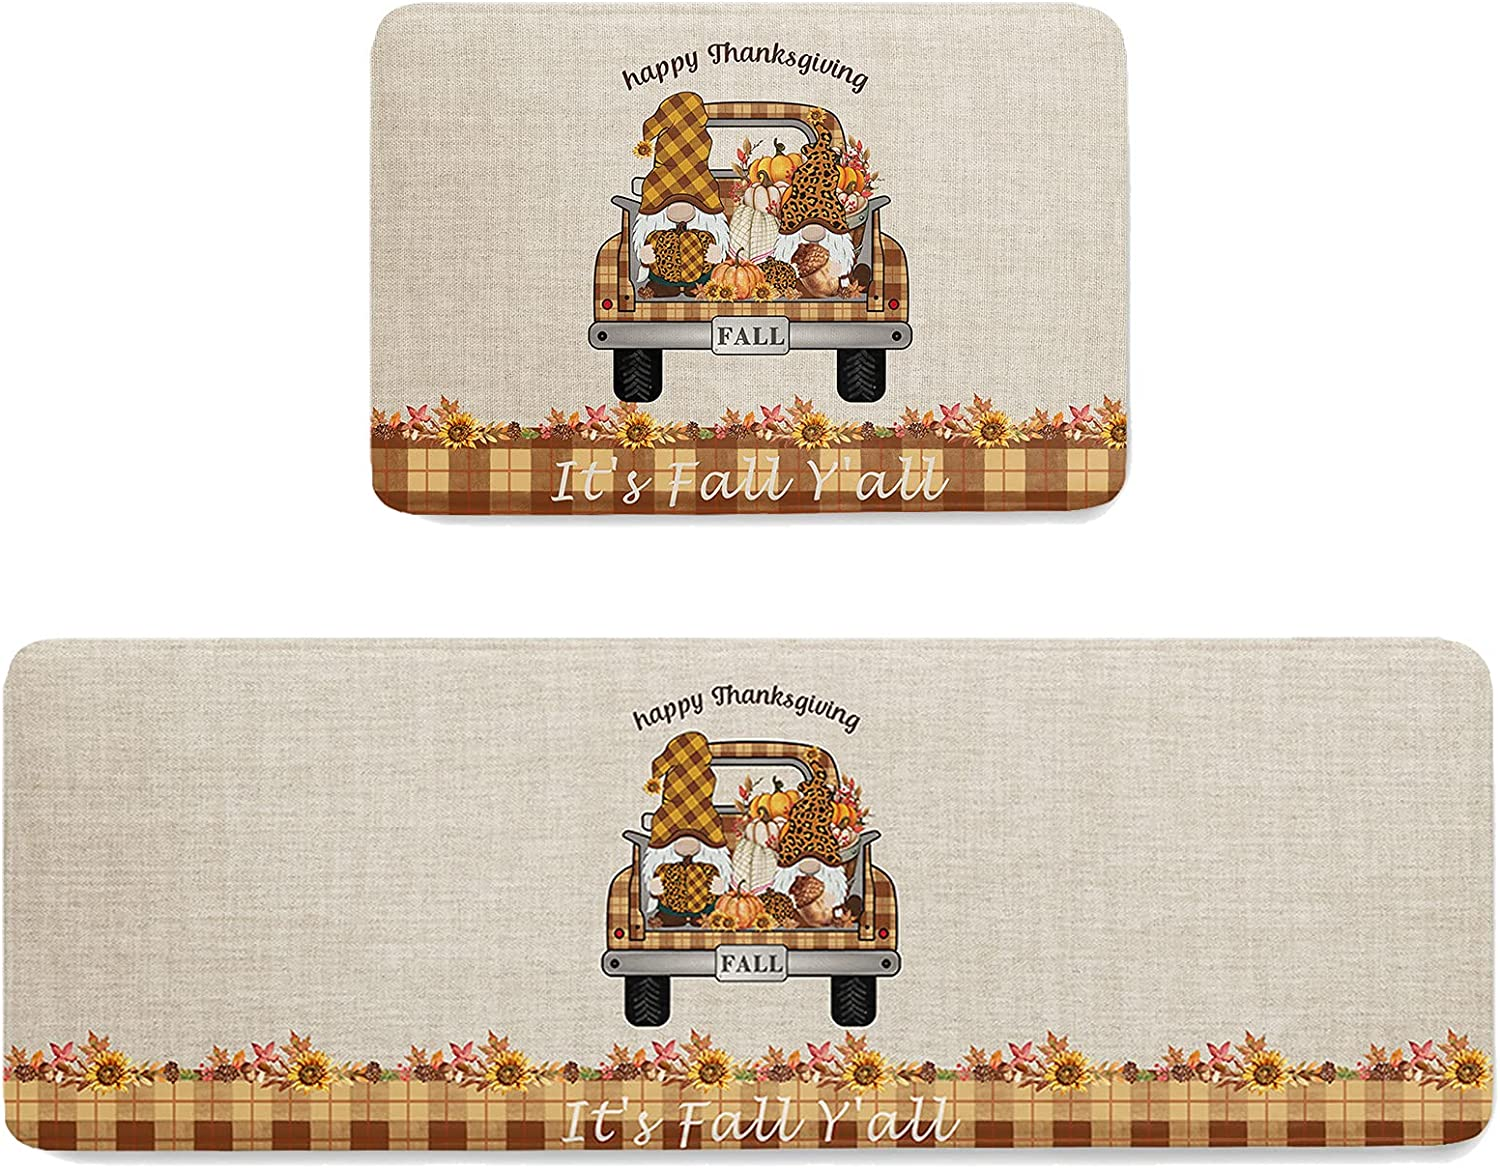 2 Pieces Doormats Non-Slip Kitchen Mats Than 2021new shipping free Rugs and Happy Beauty products Set